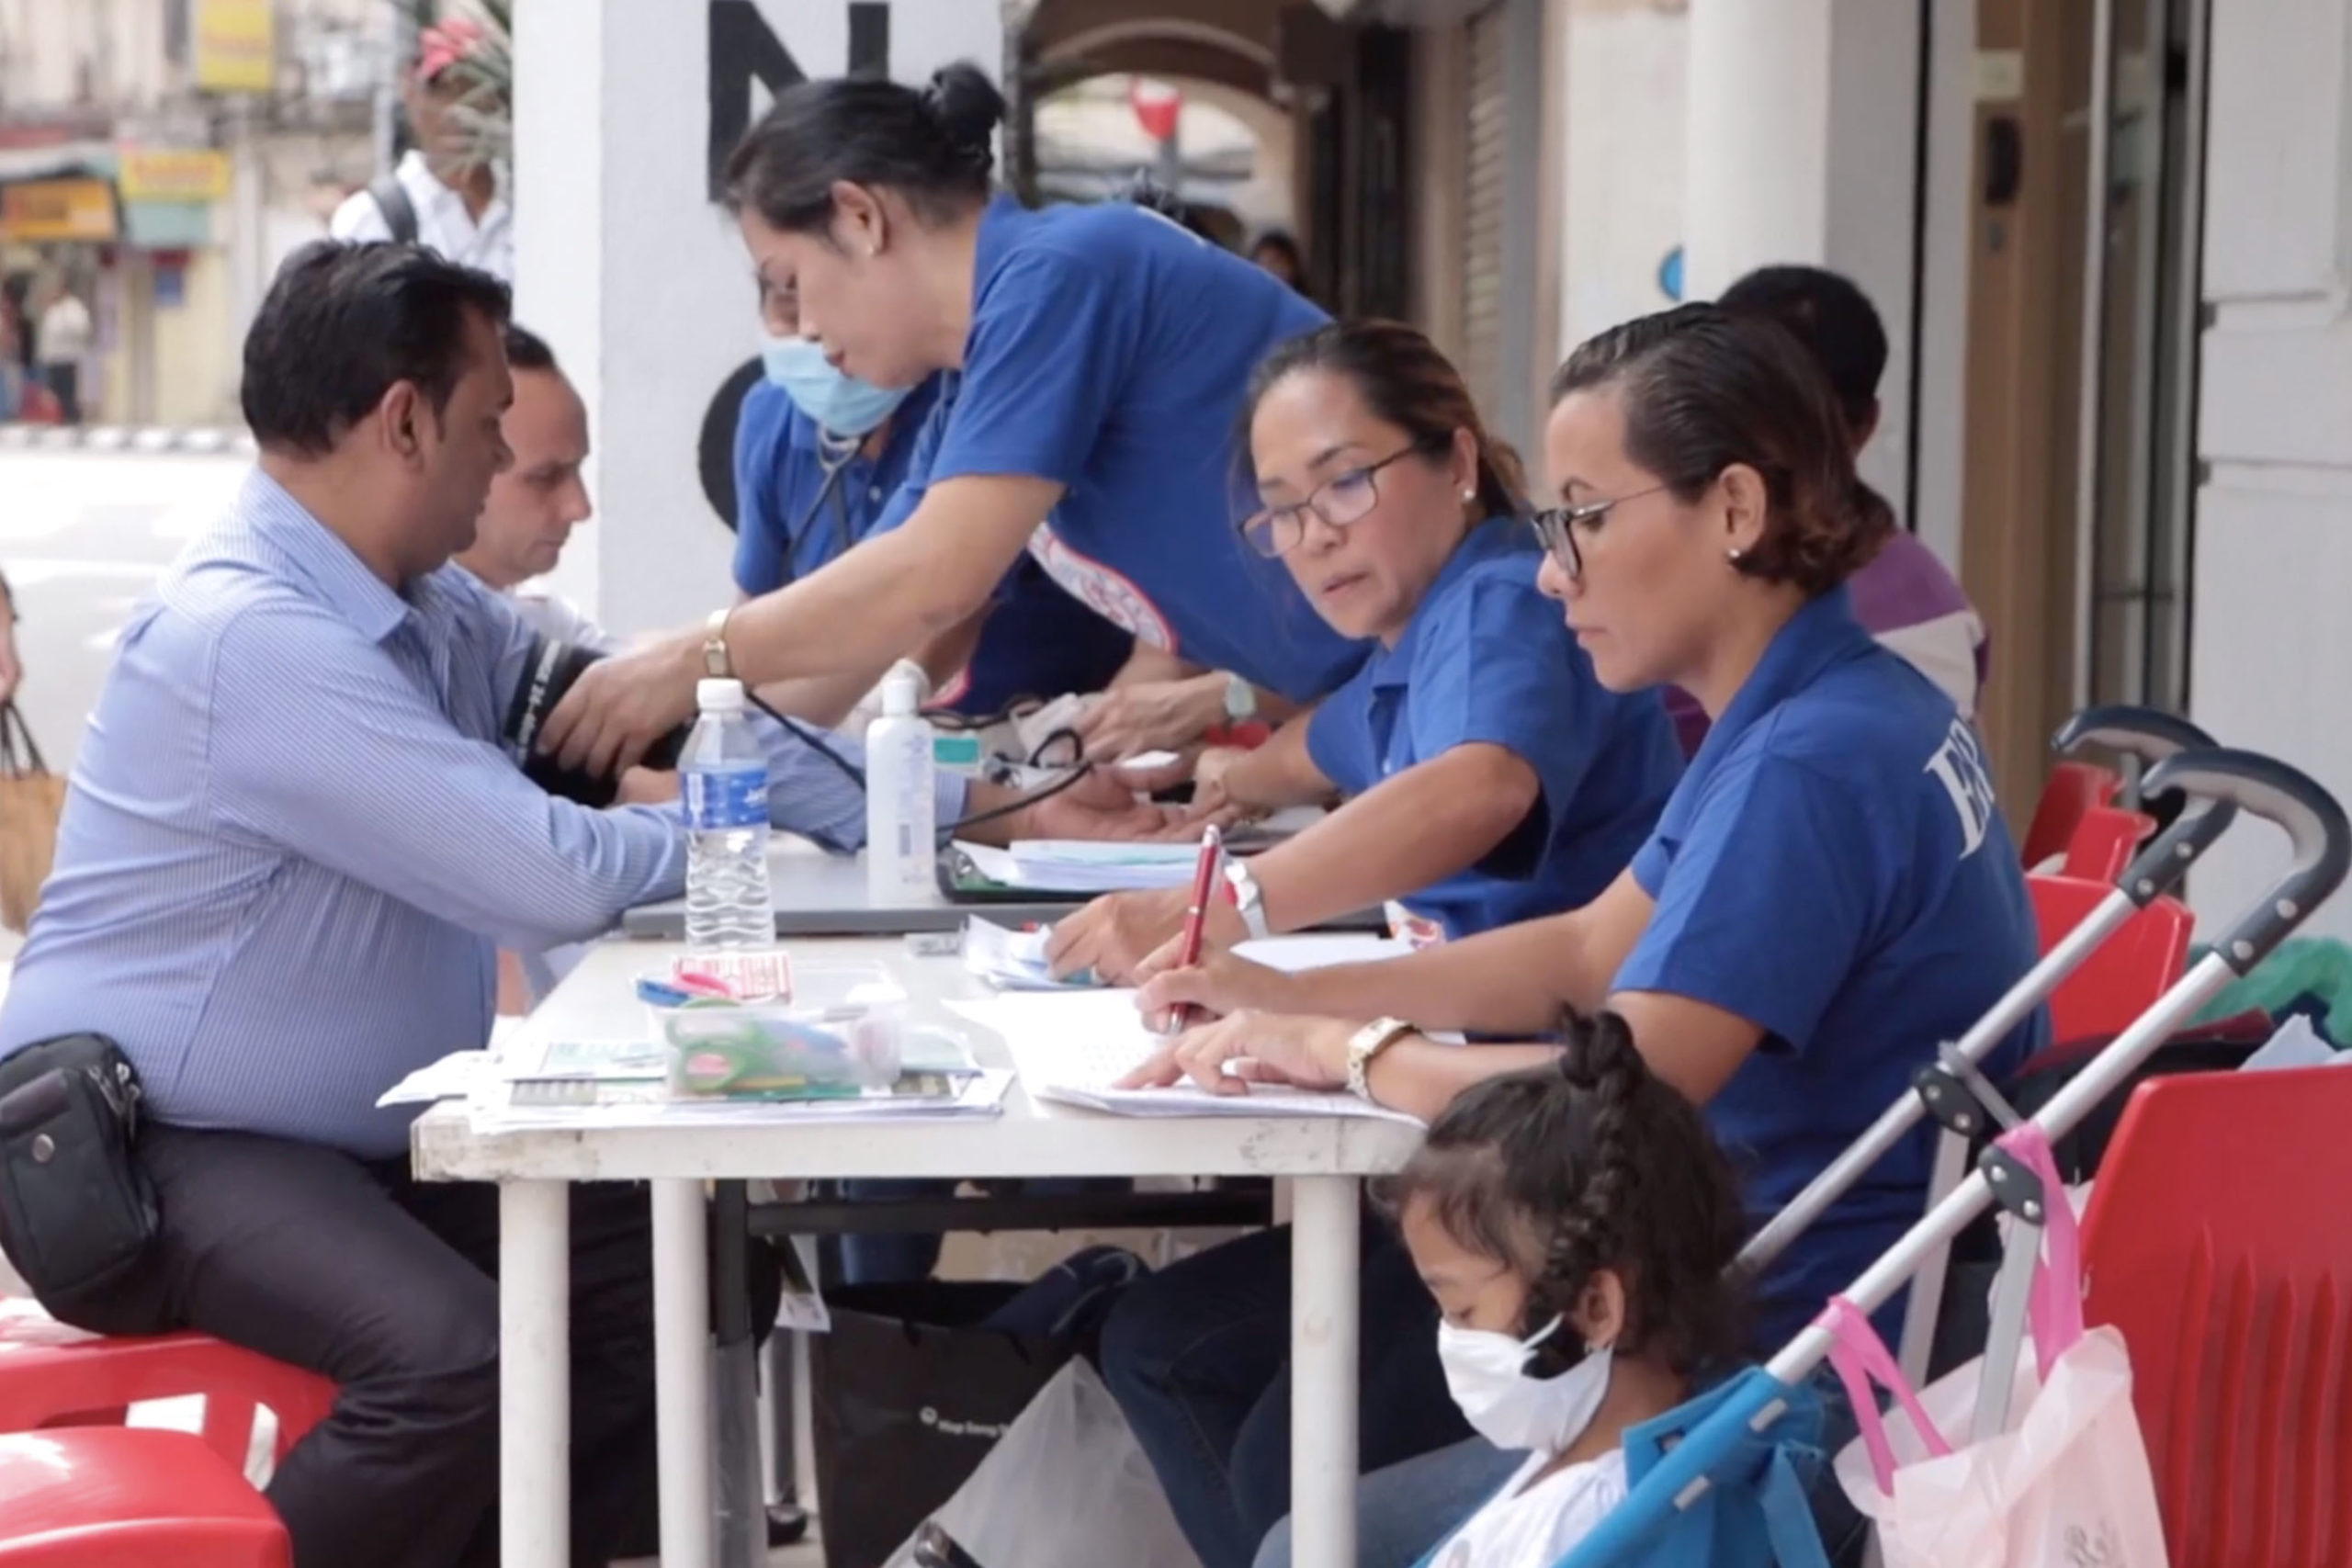 As part of Think City_s social inclusion work, migrant communities were offered free medical checkups